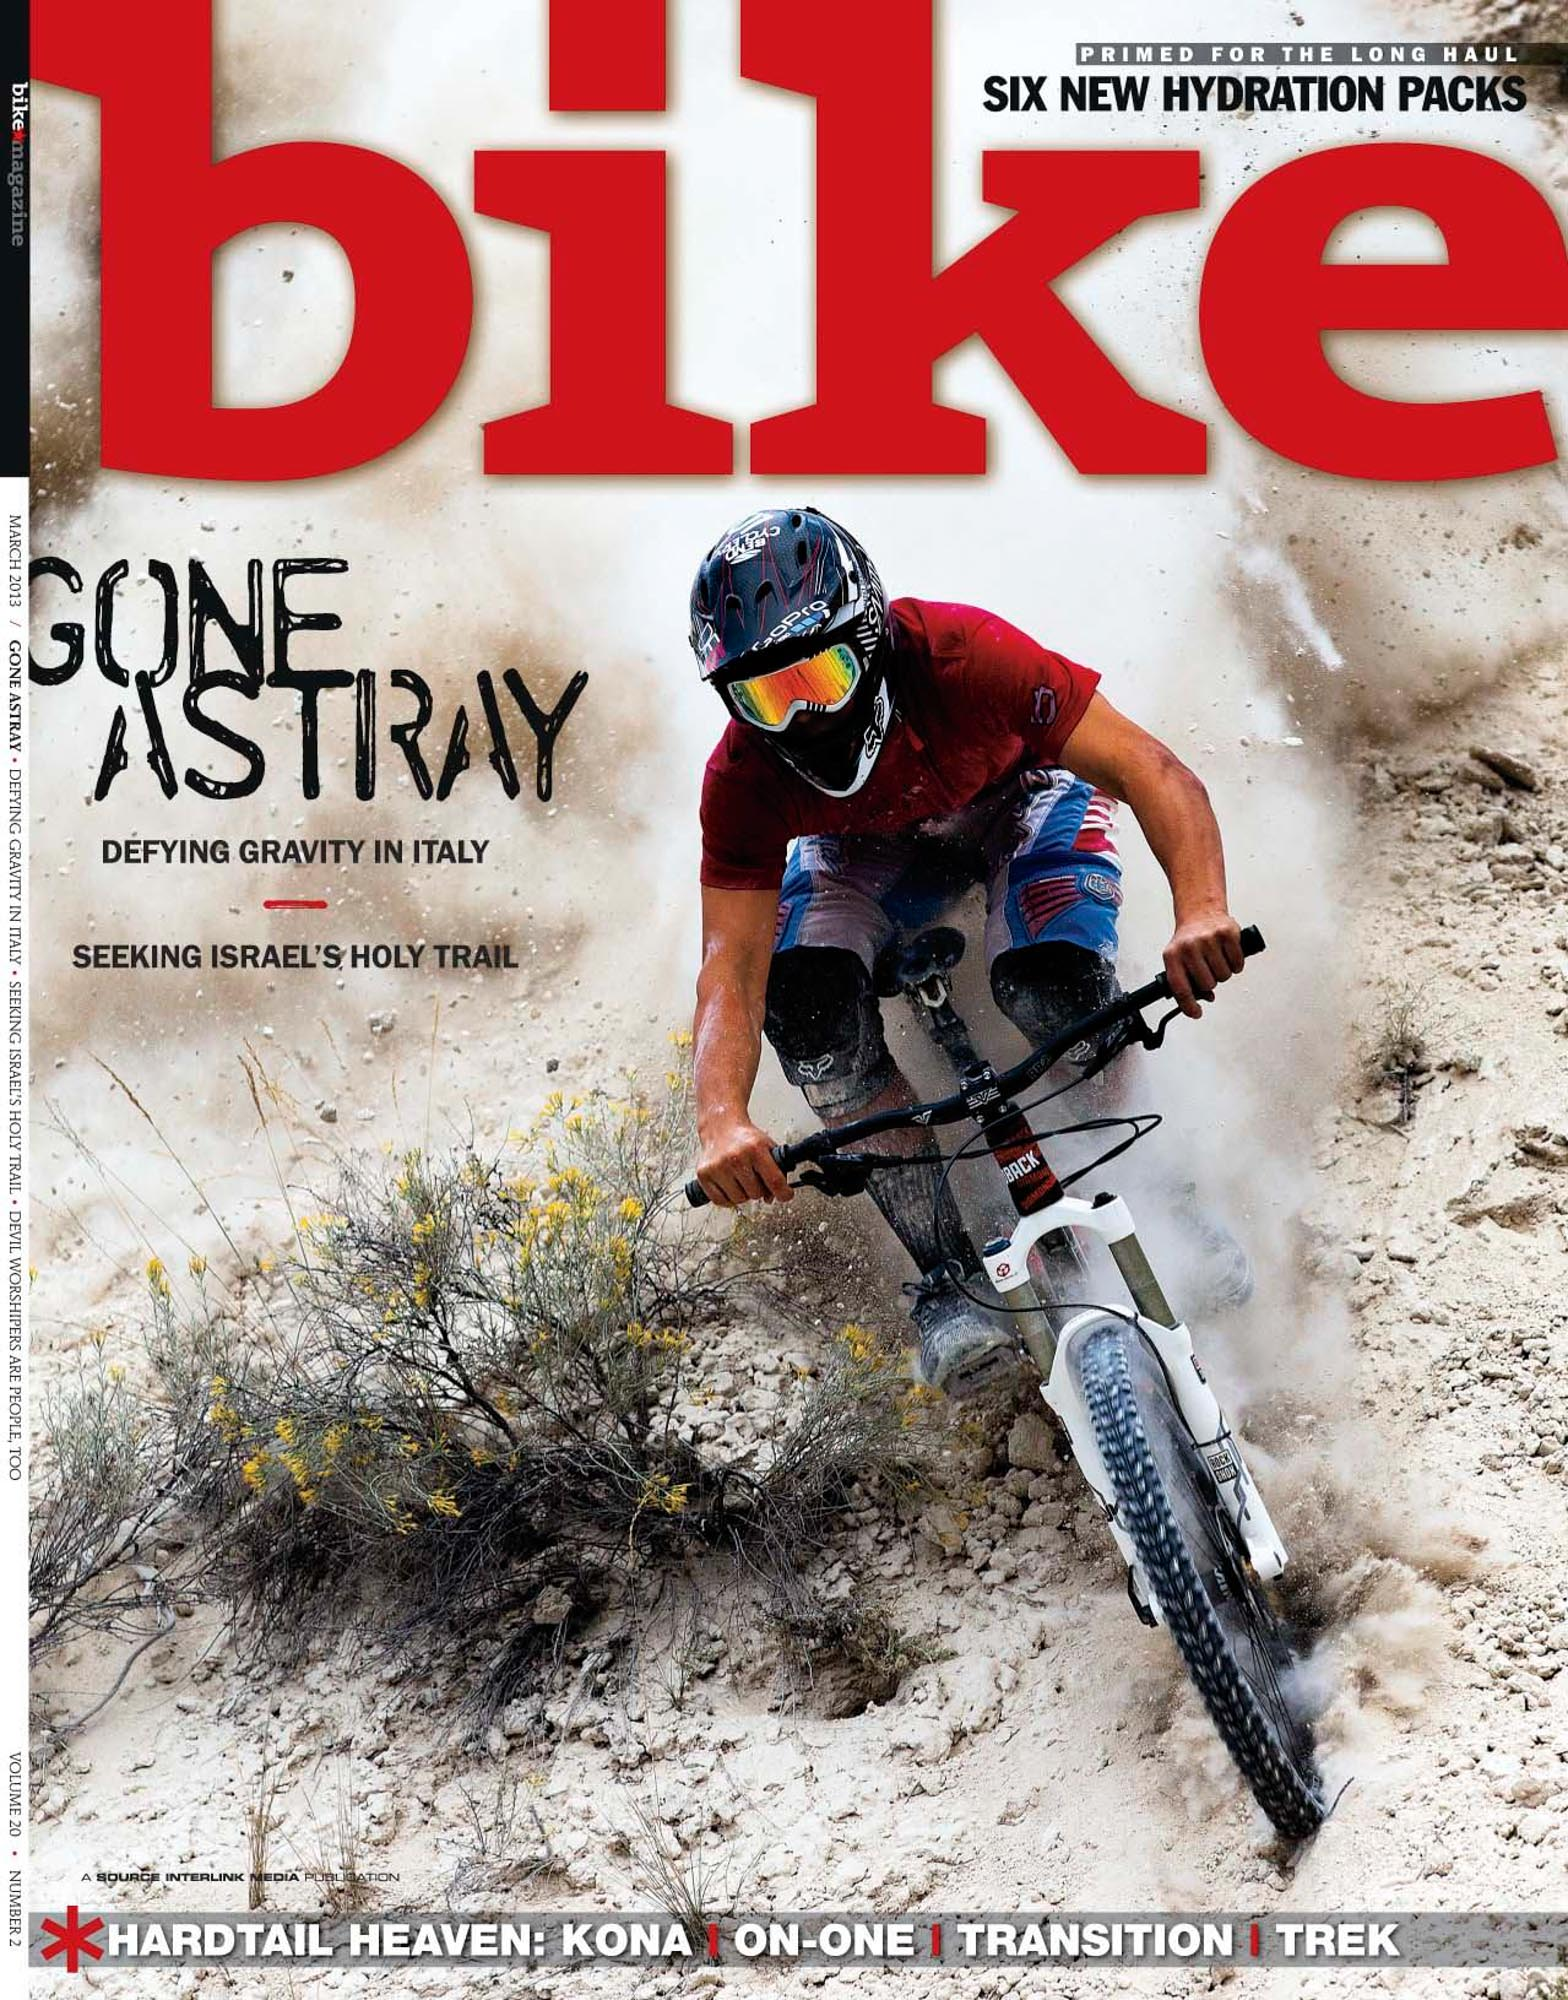 bike-magazine-cover-carson-storch-dust-outdoor-extreme.JPG